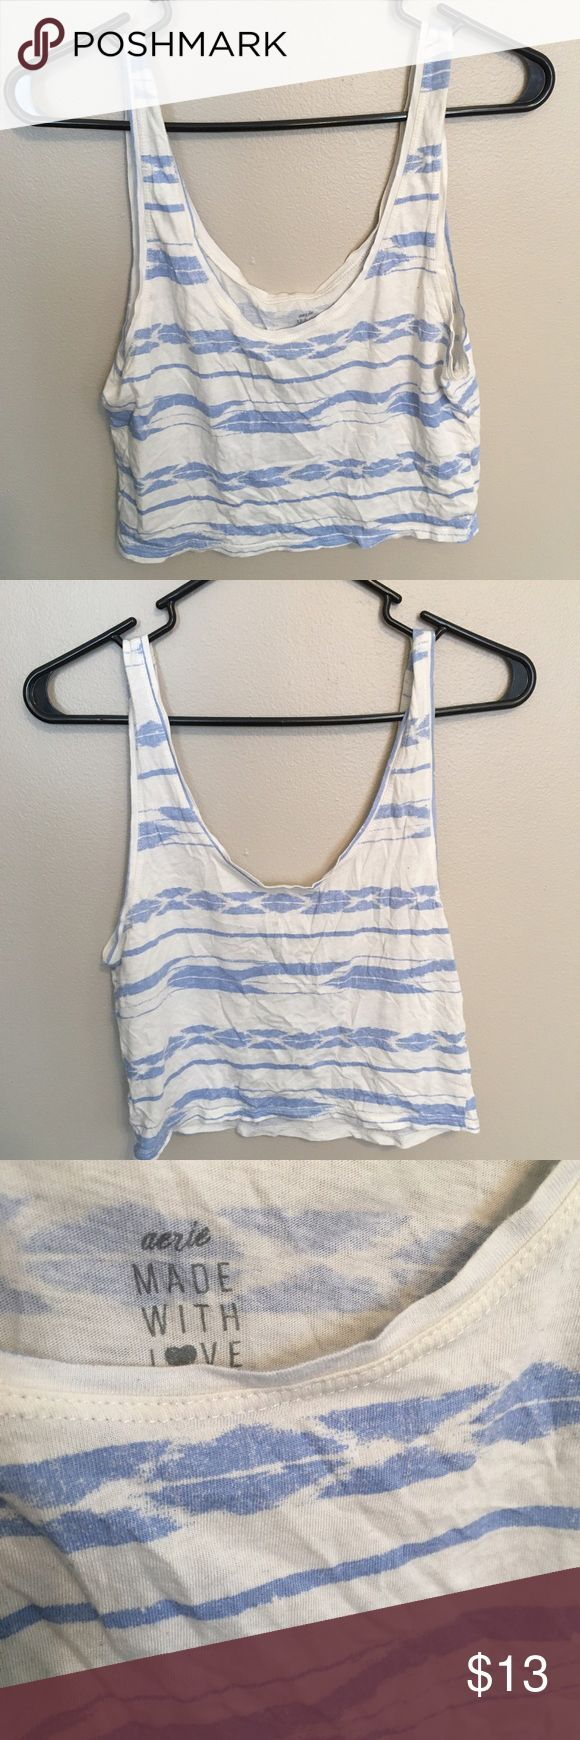 Aerie blue and white crop top Cropped tank top from Aerie | Good condition, no flaws aerie Tops Crop Tops